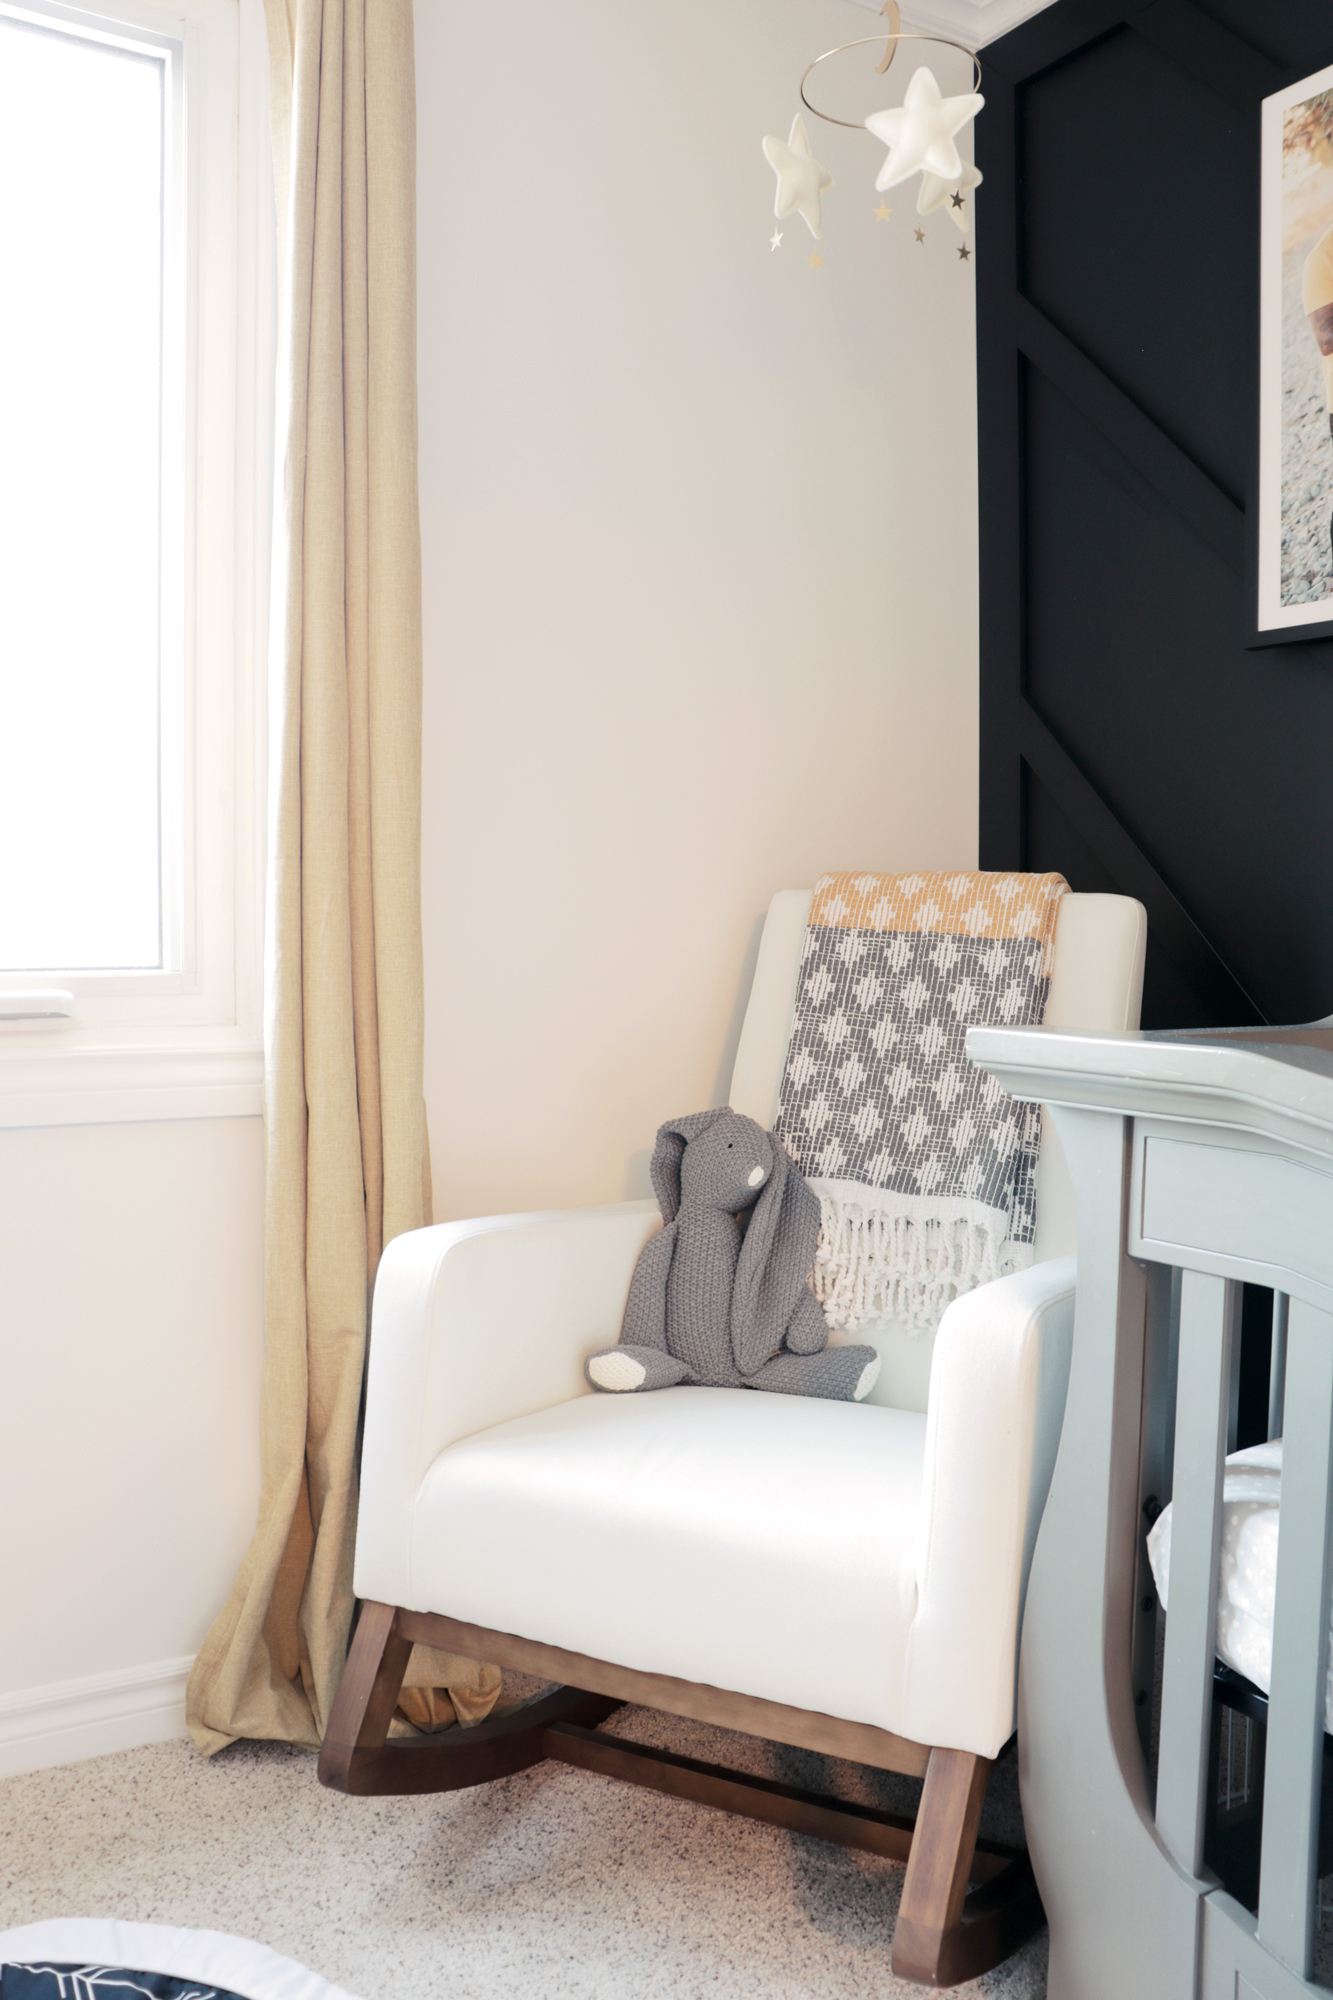 The Azte rocking chair in the corner of the nursery is a cozy spot to snuggle with baby